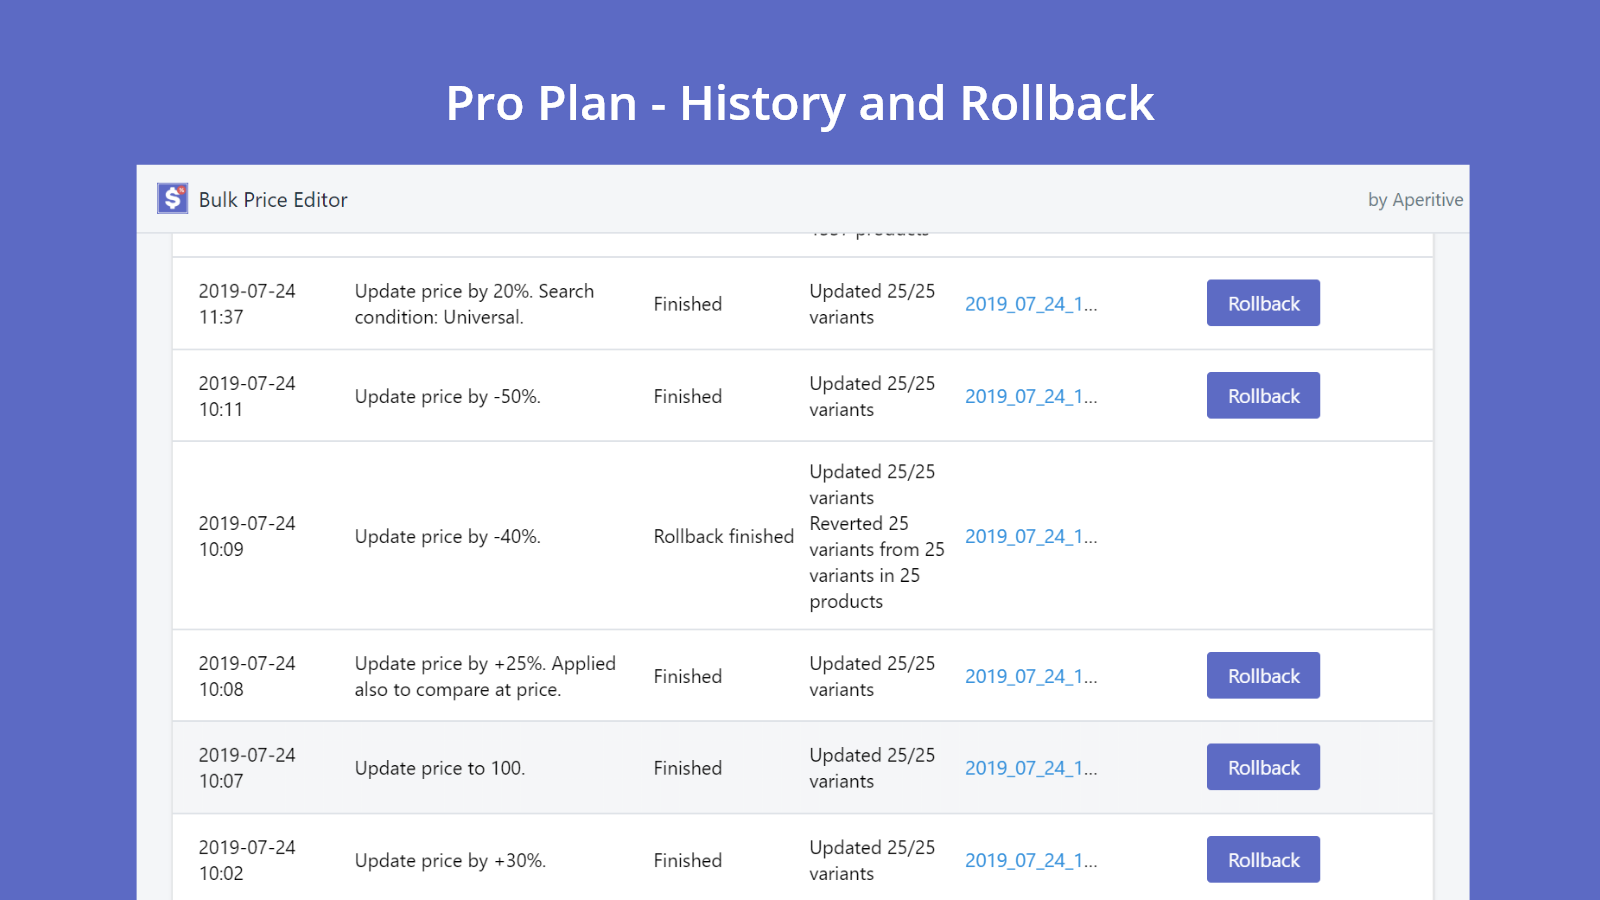 PRO PLAN - Price History and Rollback